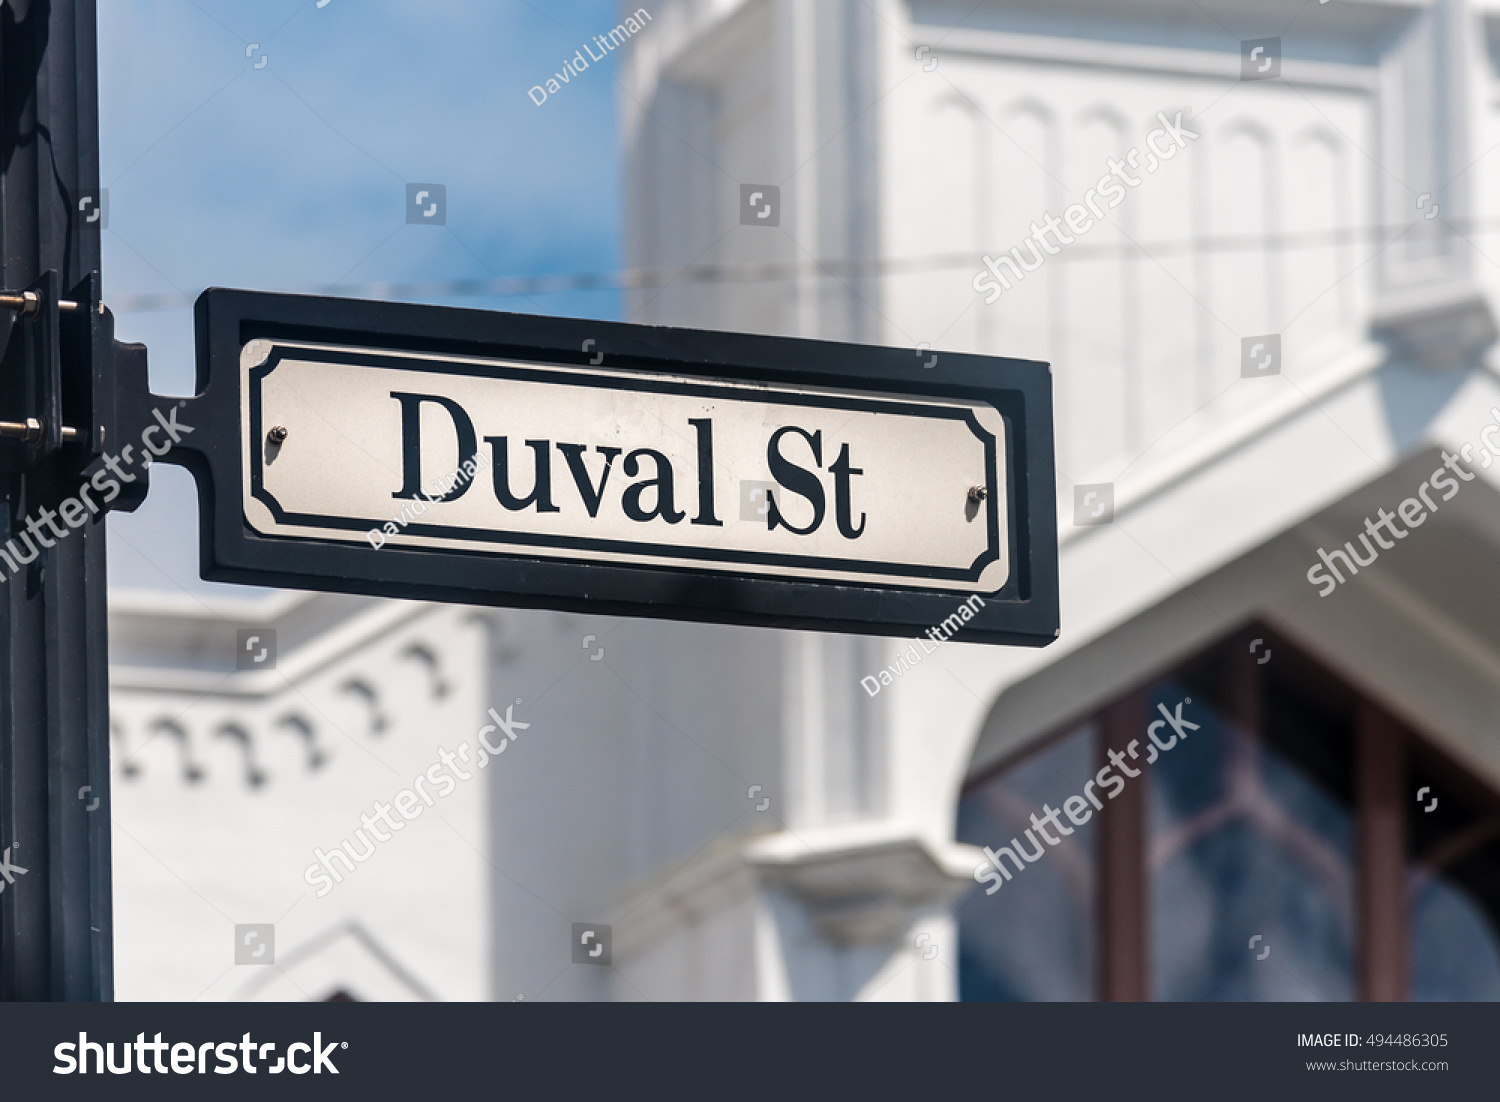 Duval Street in Key West, Florida, is a popular tourist attraction in the lower Florida Keys and is famous for art galleries, boutiques, restaurants, night clubs and events with wild parties.